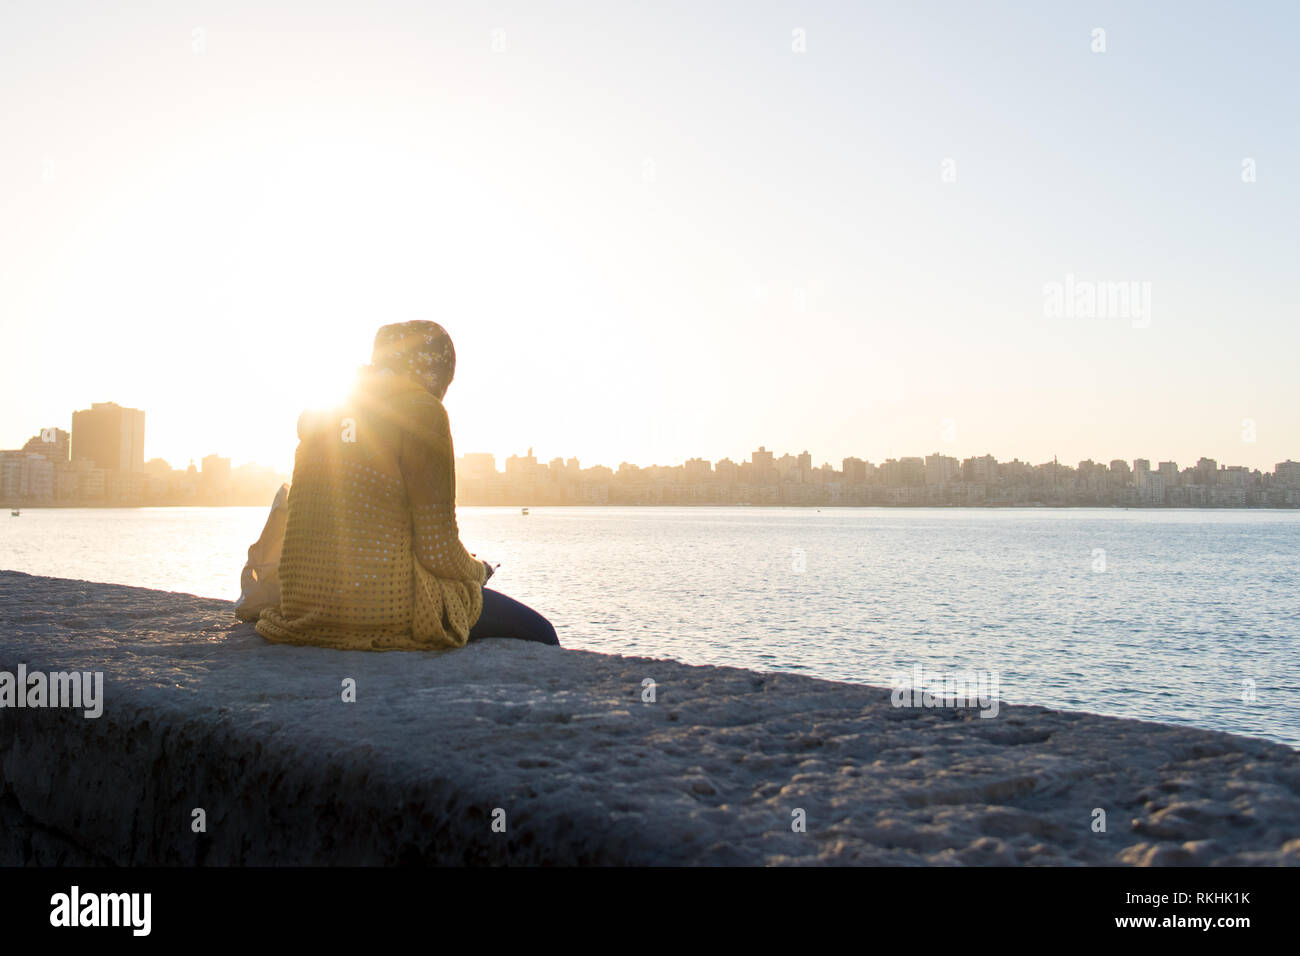 A woman sits looking at the phone next to the Mediterranean Sea at sunset time in Alexandria town, Egypt. - Stock Image